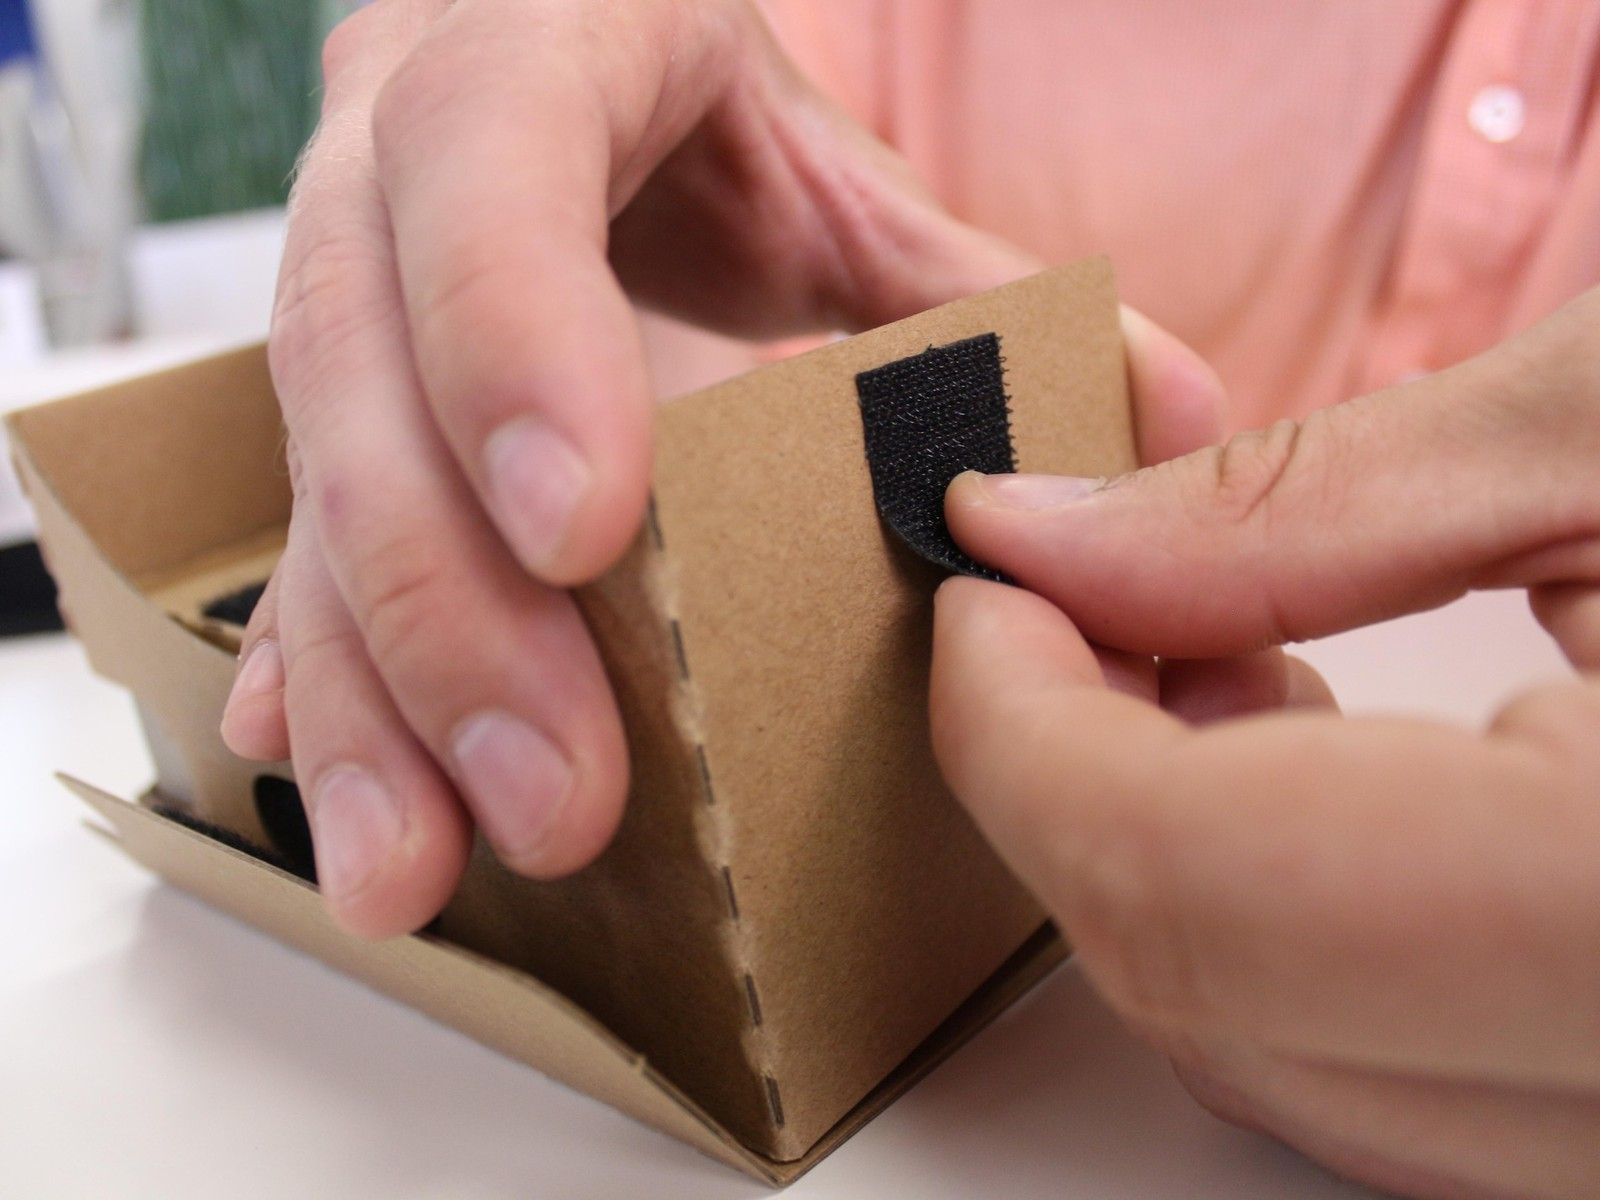 Remove the backing of the first velcro strip and adhere it to the side of the viewer.